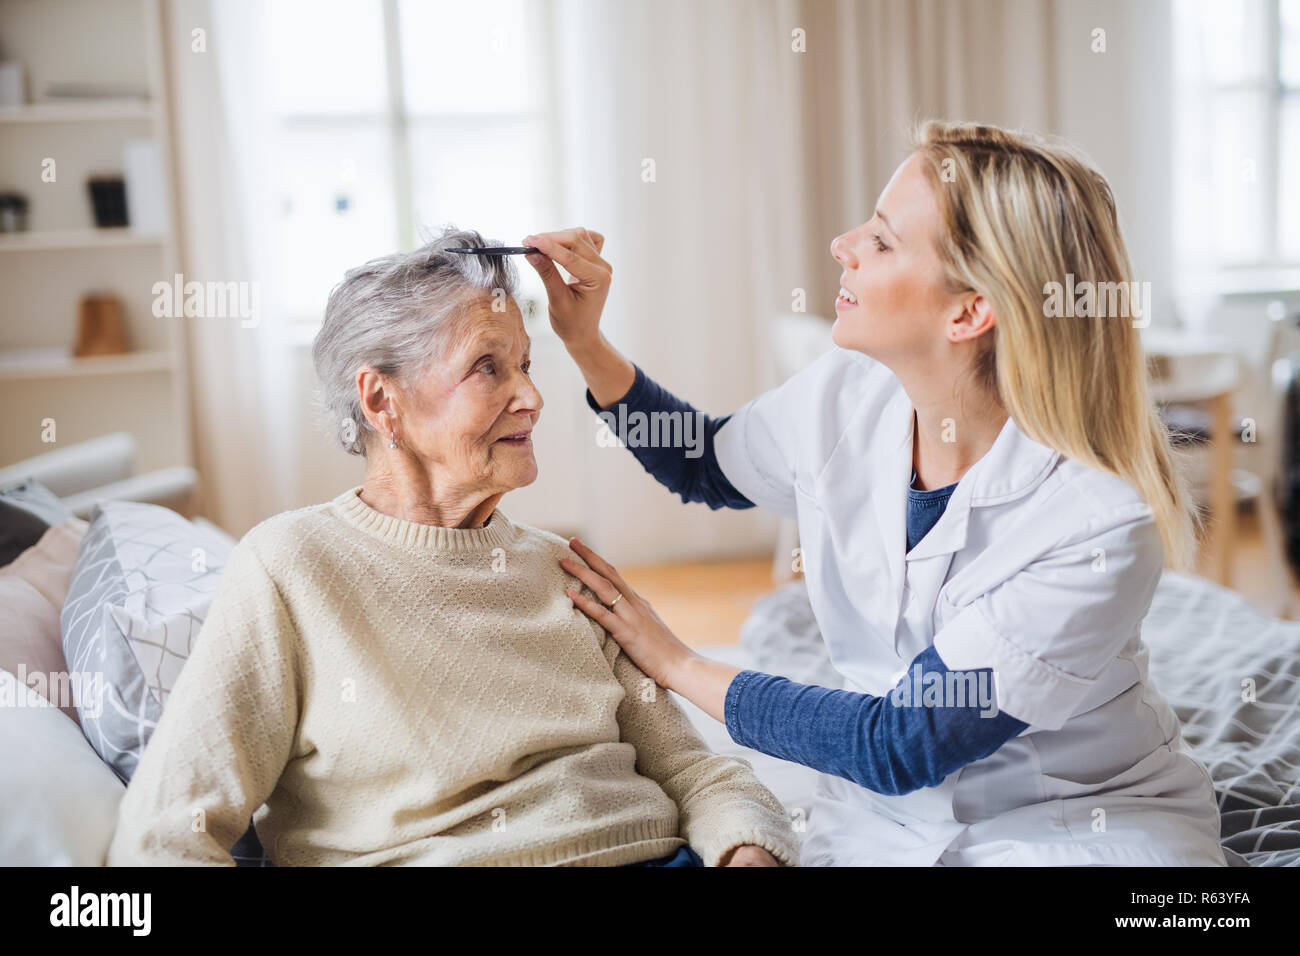 A Health Visitor Combing Hair Of Senior Woman At Home Stock Photo Alamy